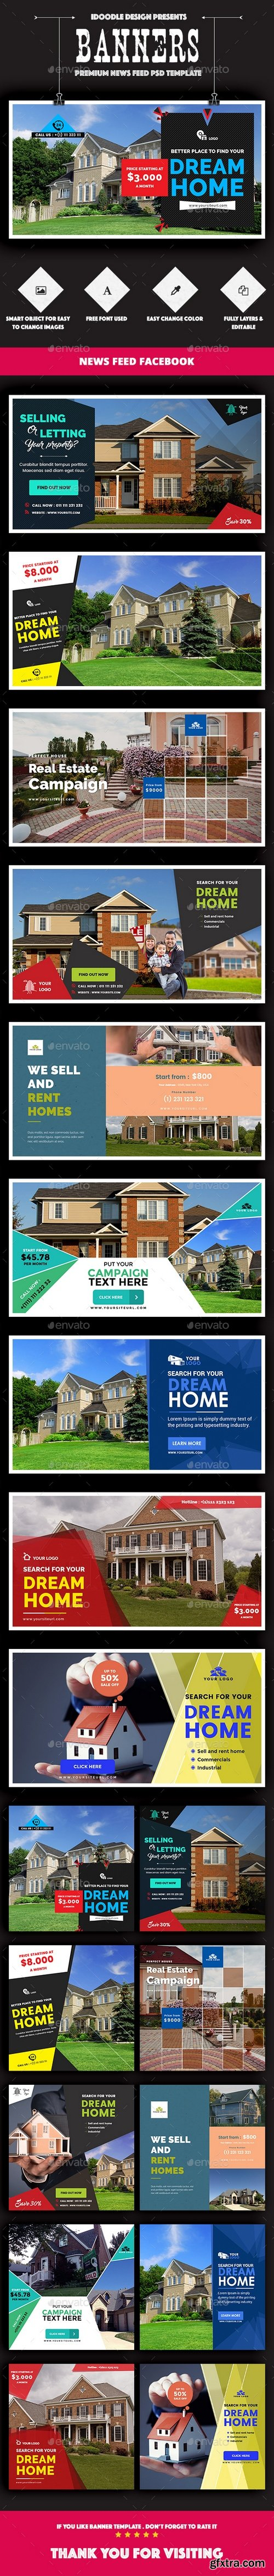 Graphicriver - Facebook Real Estate Banners Ads - 20 PSD [2 Size Each] 16136352